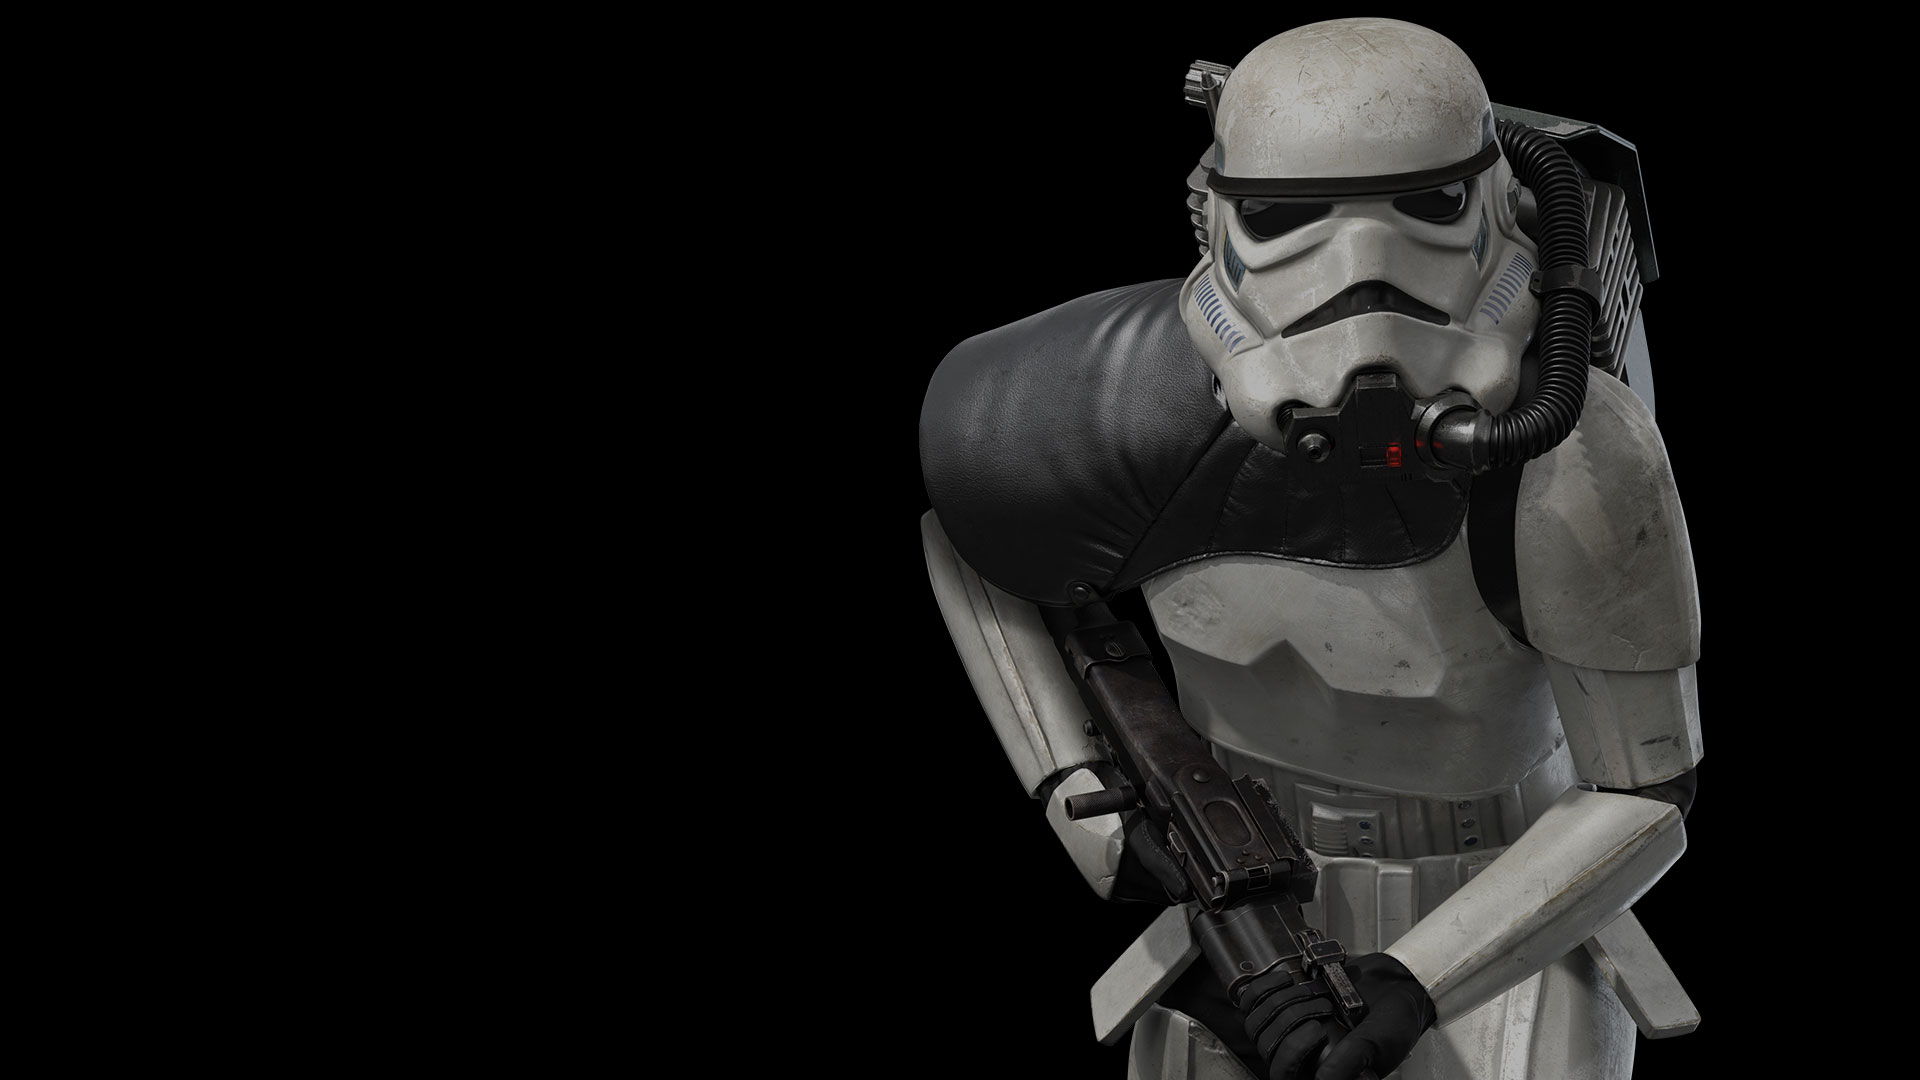 Star wars battlefront release date in Perth